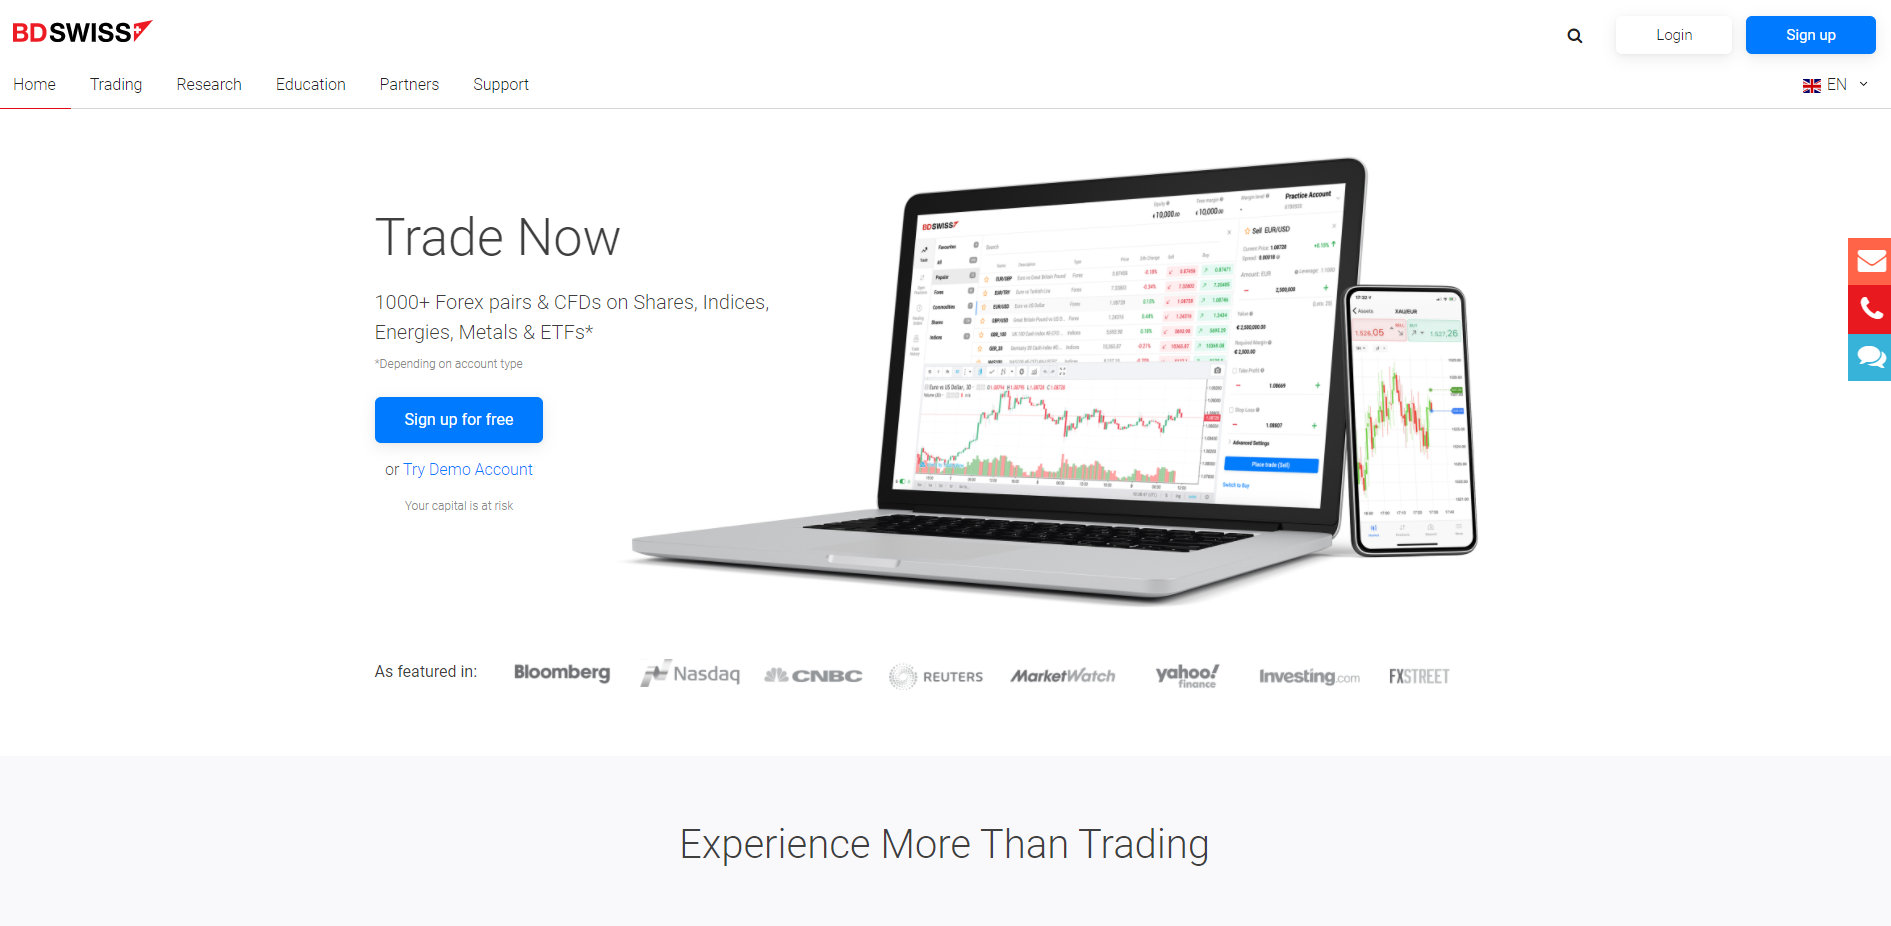 BDSwiss forex broker in India